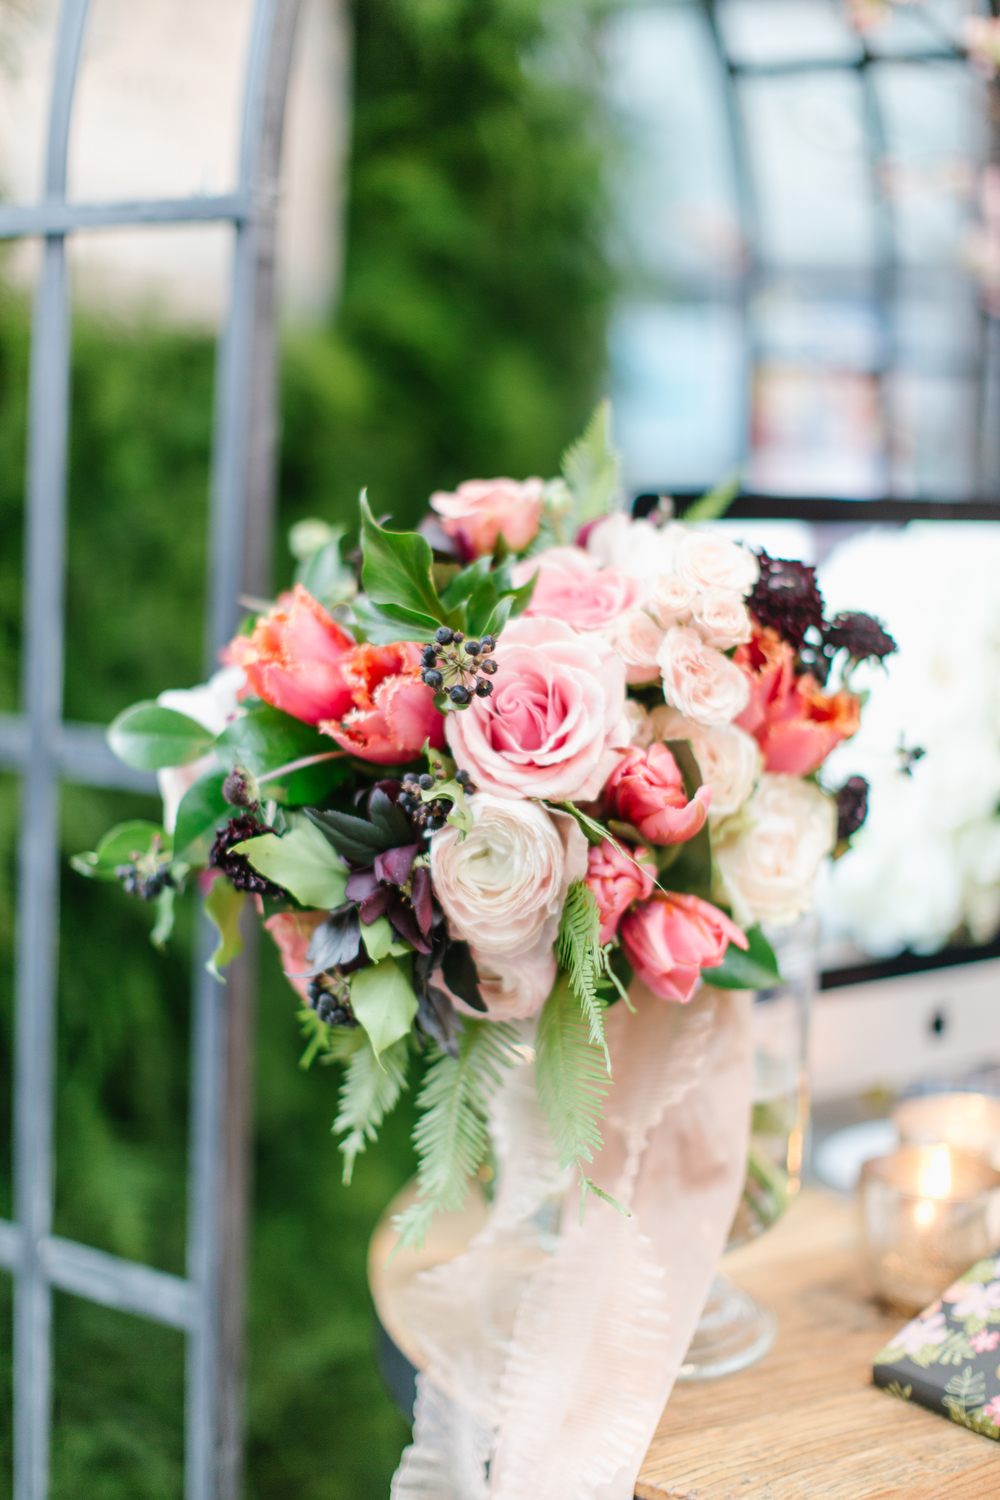 02.22.15 [Wedding Co Market]-High Res-2.jpg